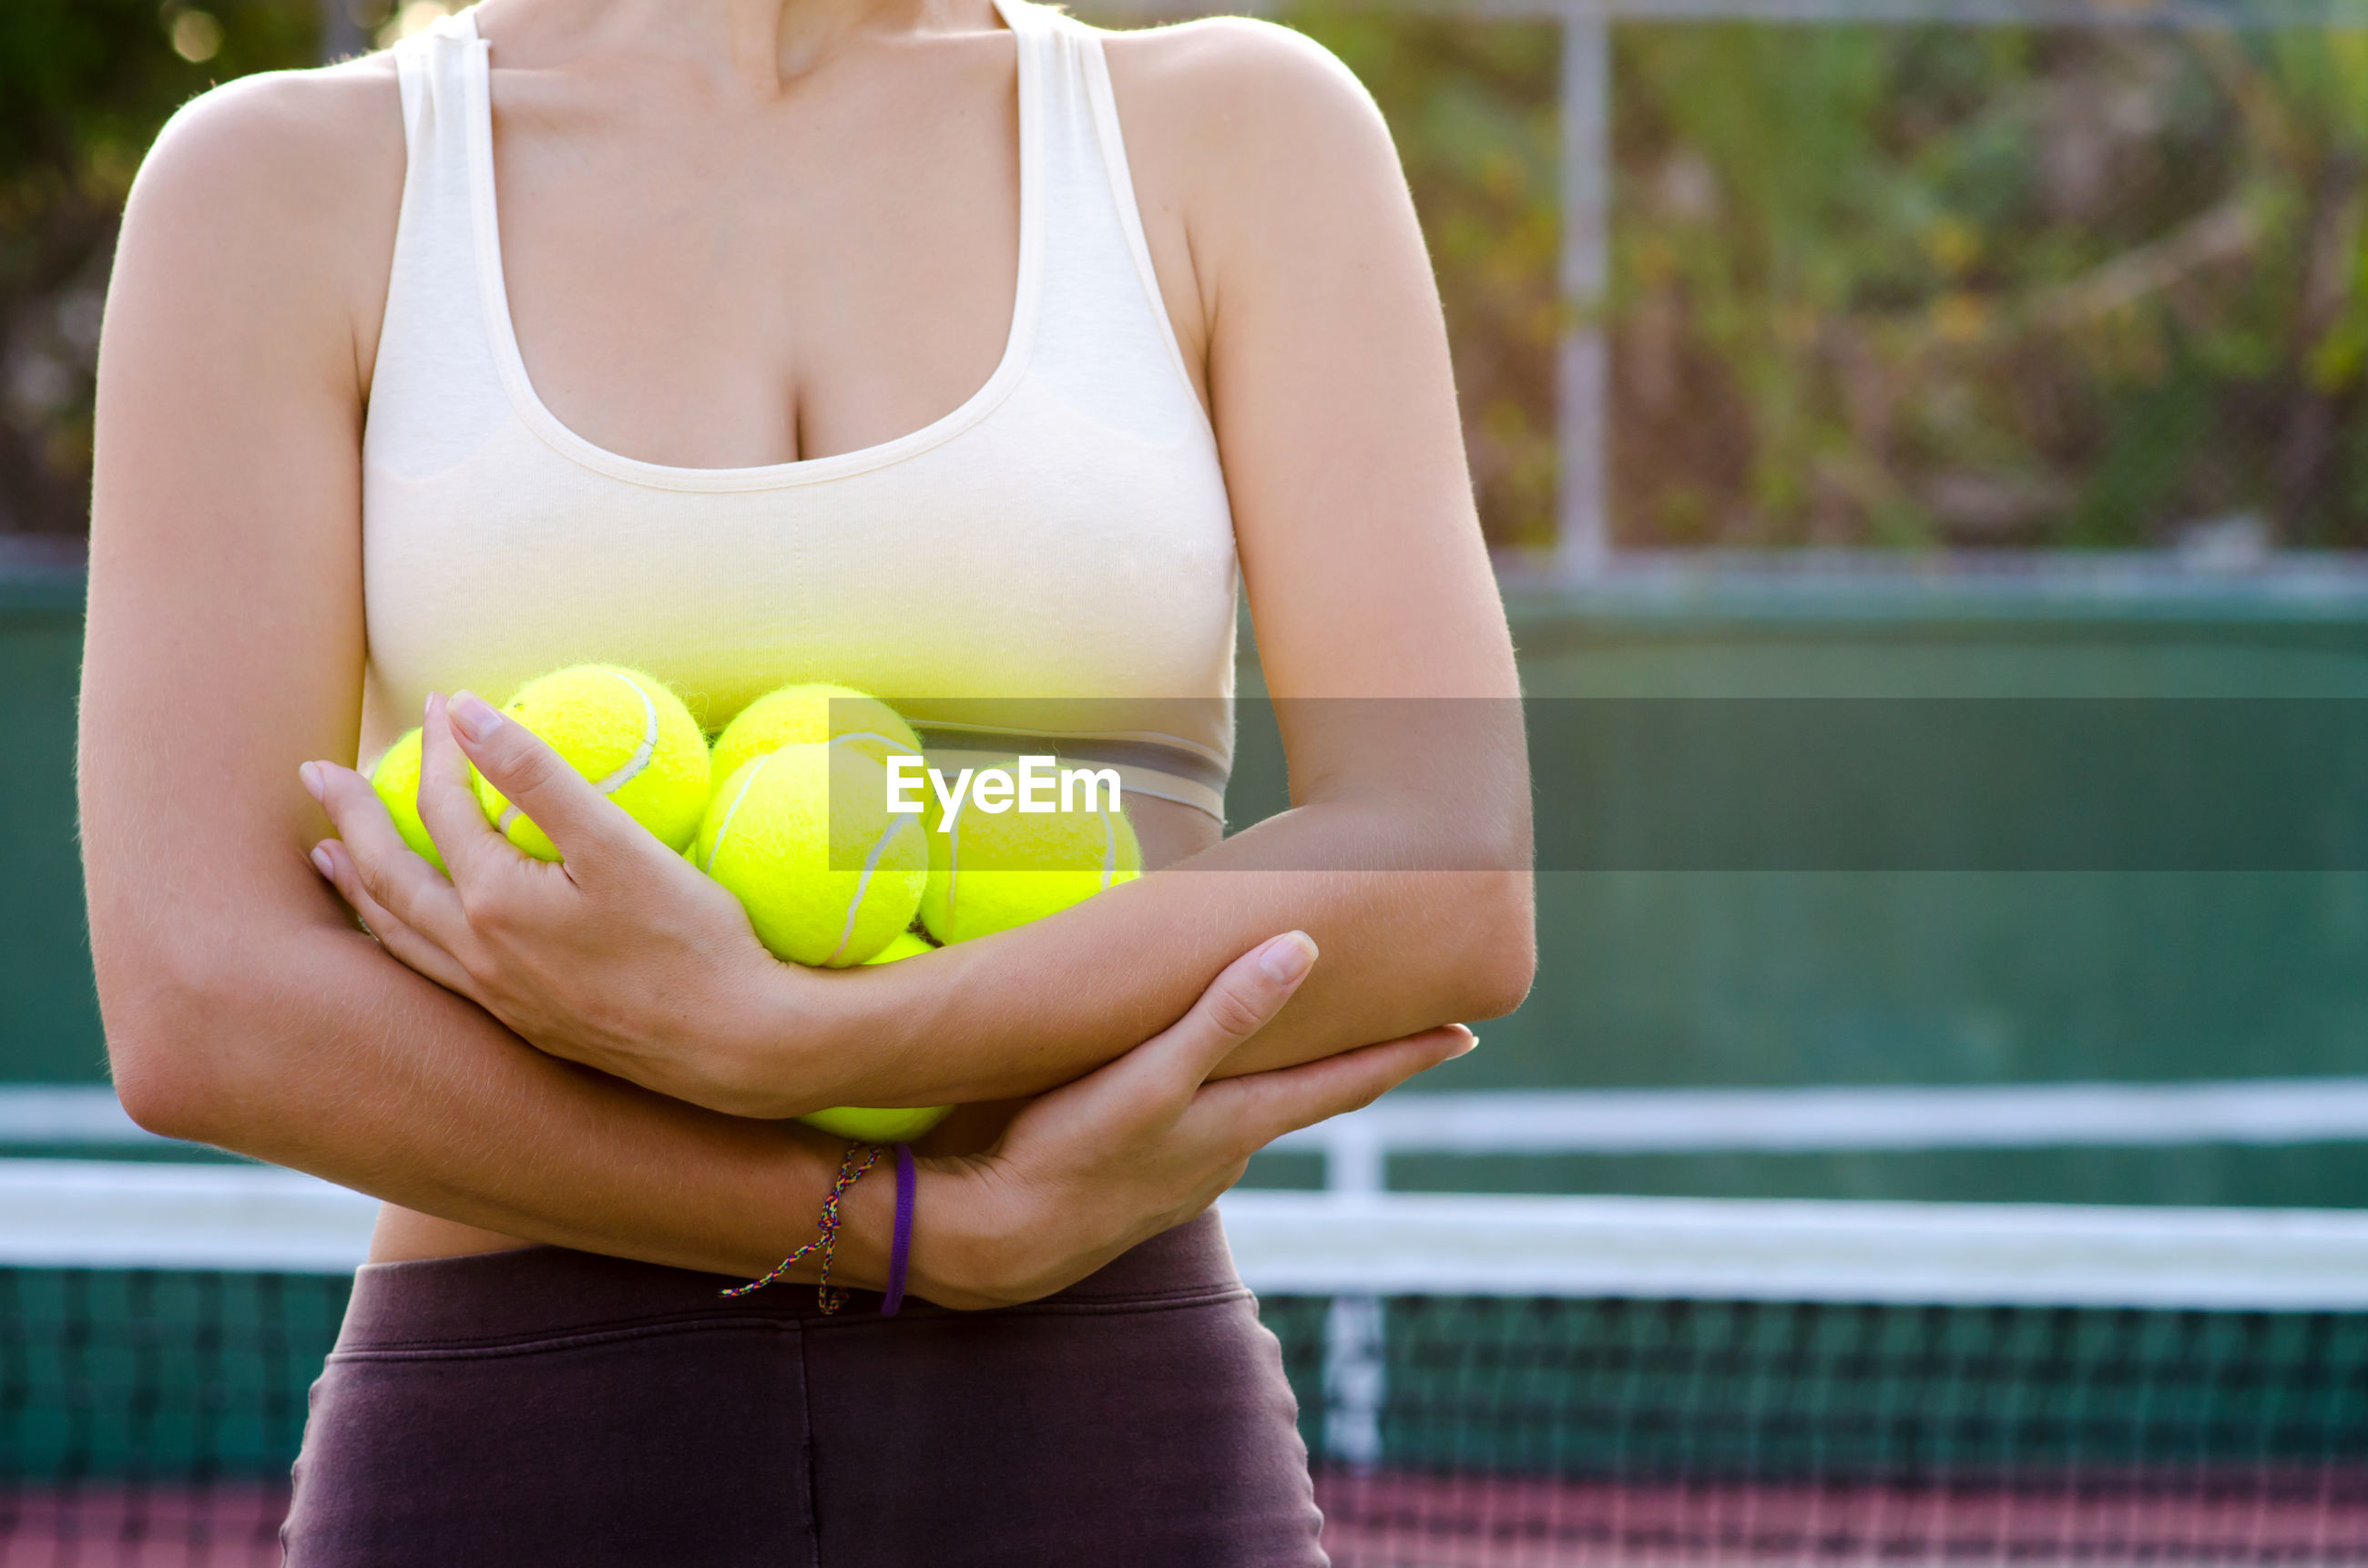 Midsection of woman holding tennis balls while standing in court